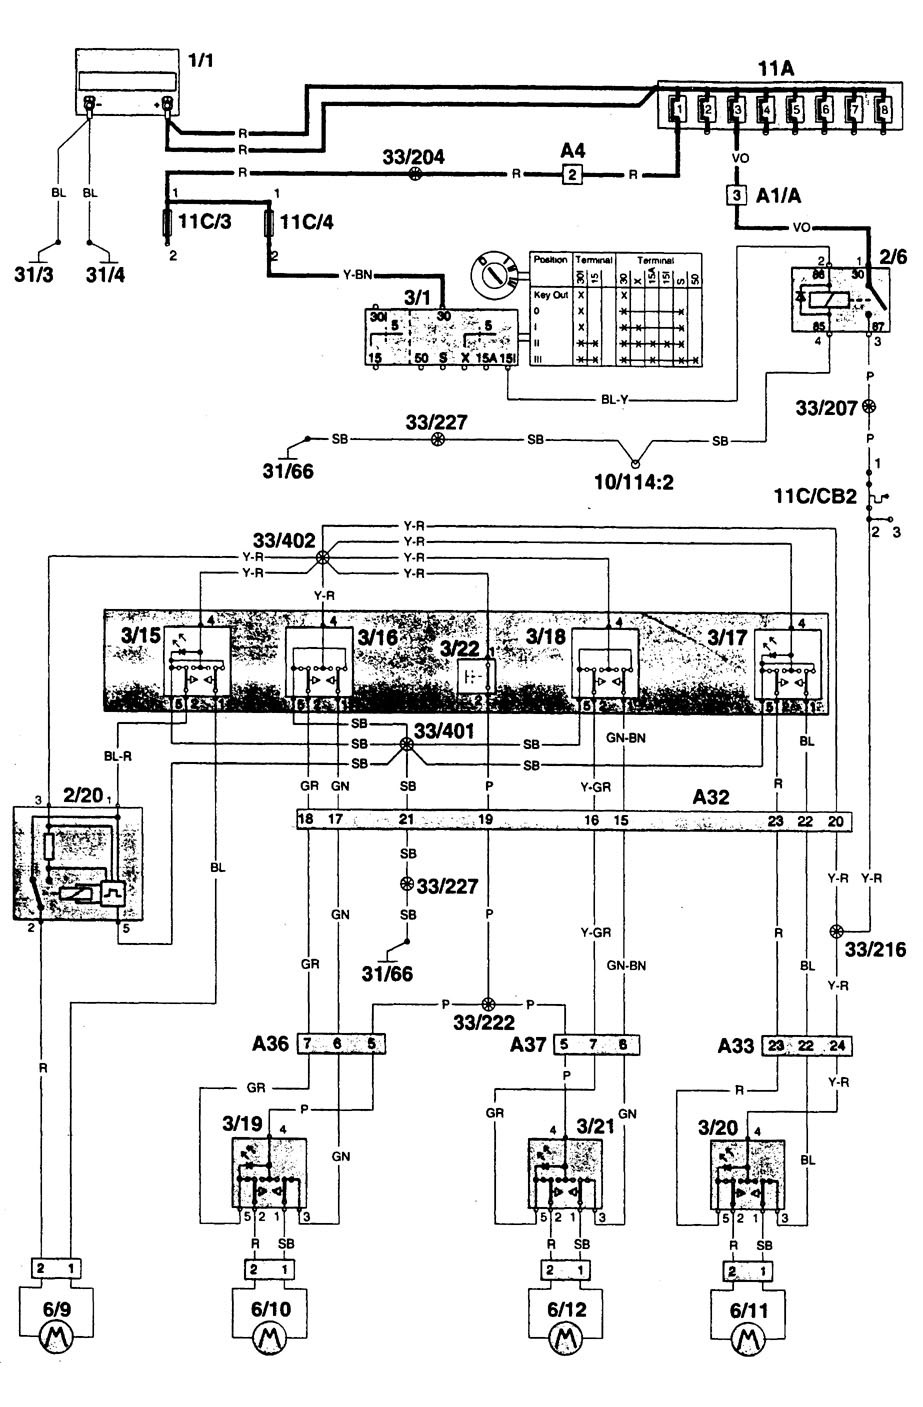 1996 monaco wiring diagram schematic volvo 960  1996  wiring diagrams power windows carknowledge info  volvo 960  1996  wiring diagrams